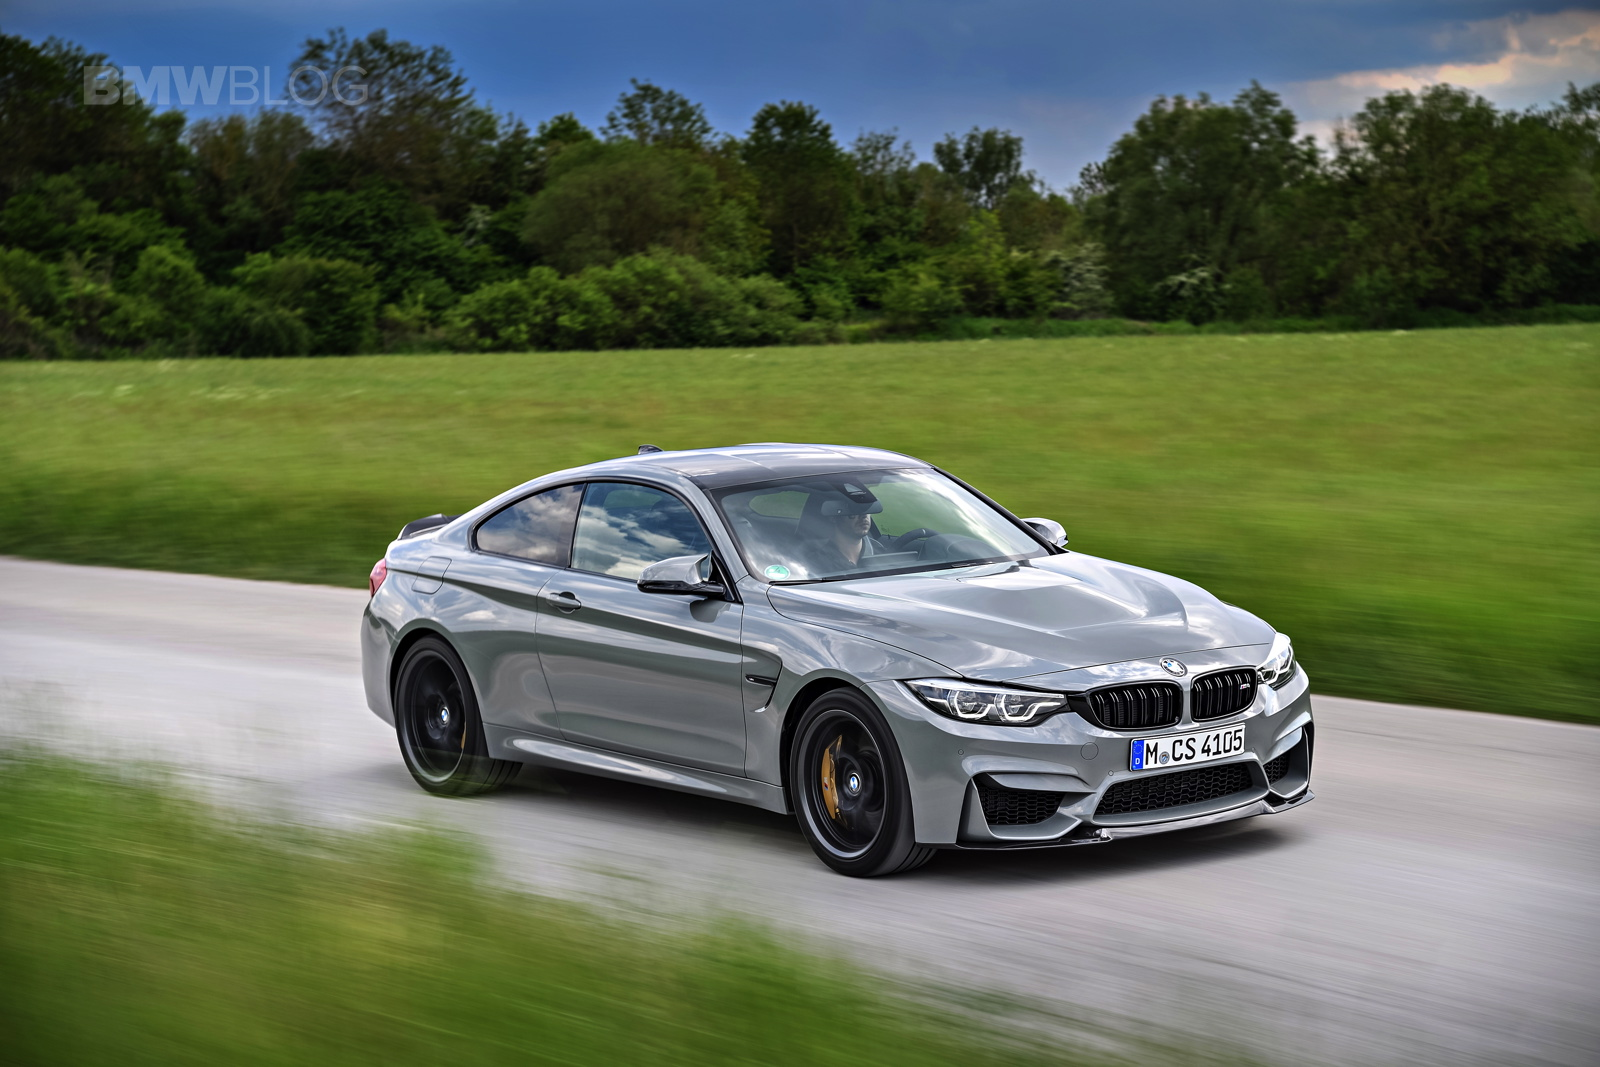 BMW M4 CS LIME ROCK GREY 34